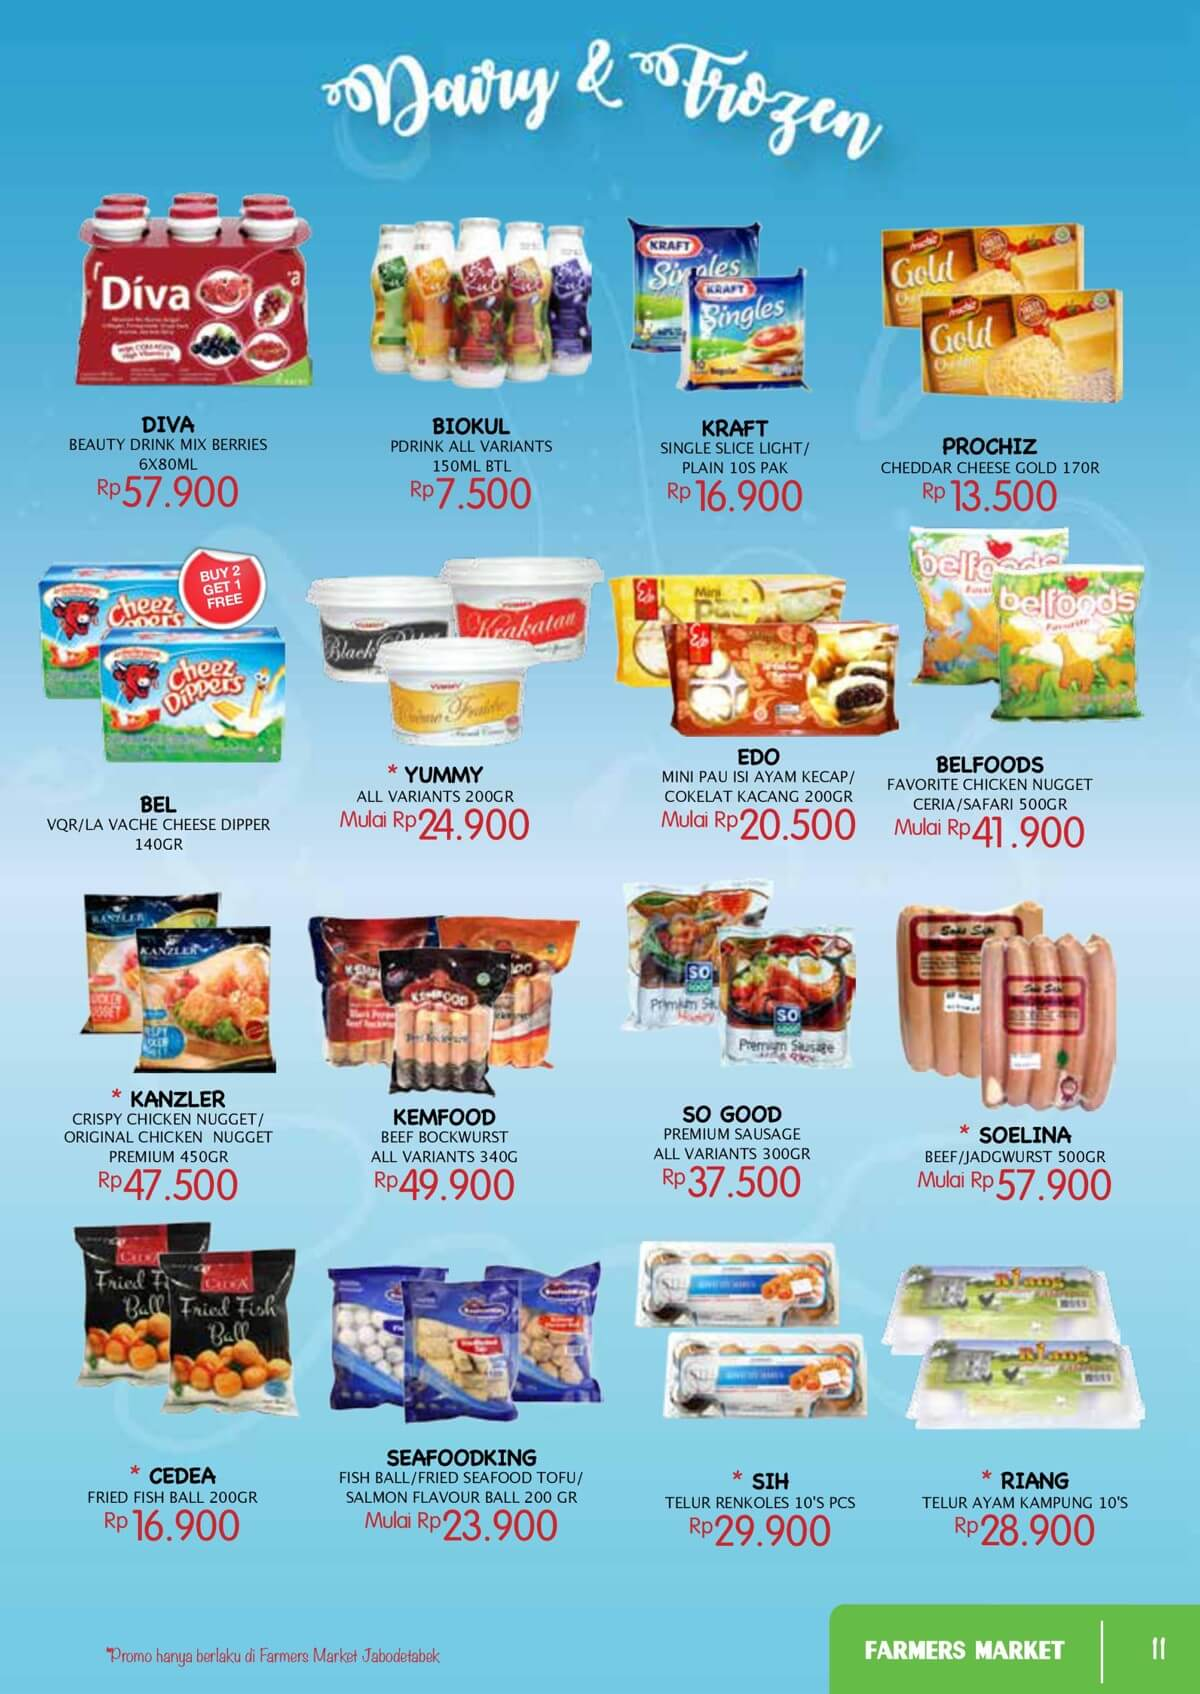 Katalog Farmers Market 10 May 18 Belfoods Favorite Chicken Nugget Ceria Type To Search Item In This Catalogue